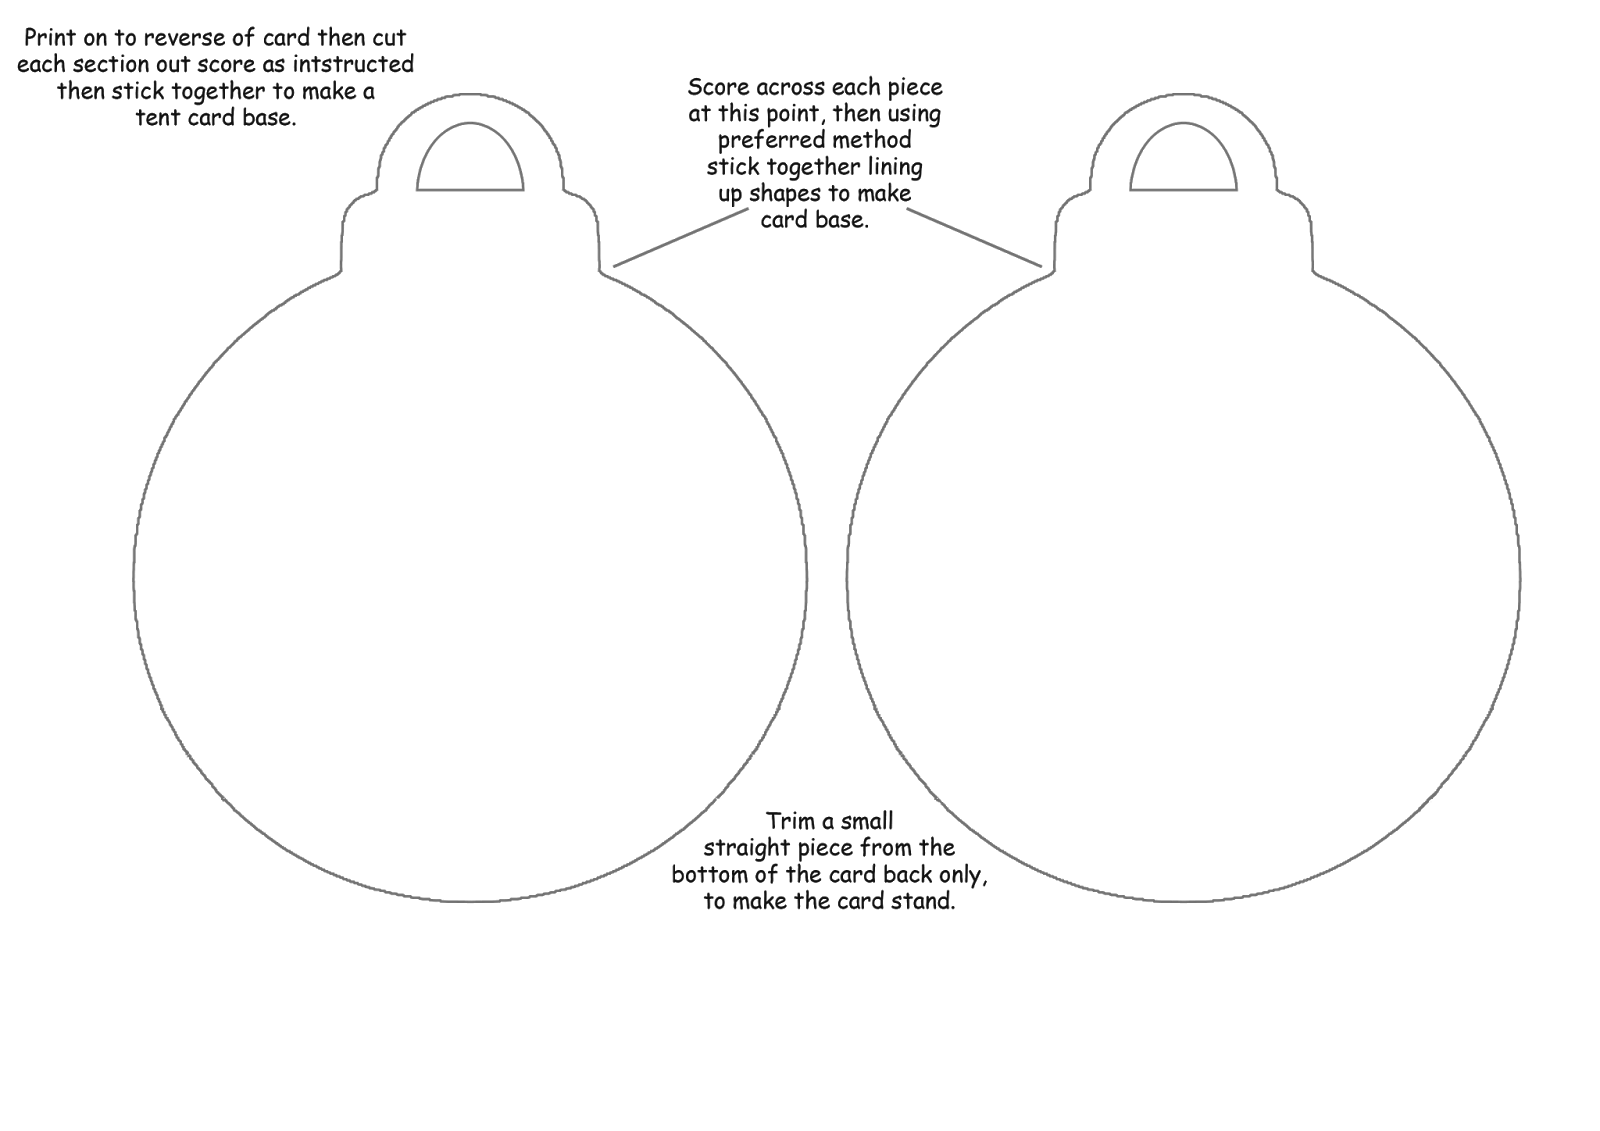 christmas baubles templates to colour - digi re doo dah bauble card with template